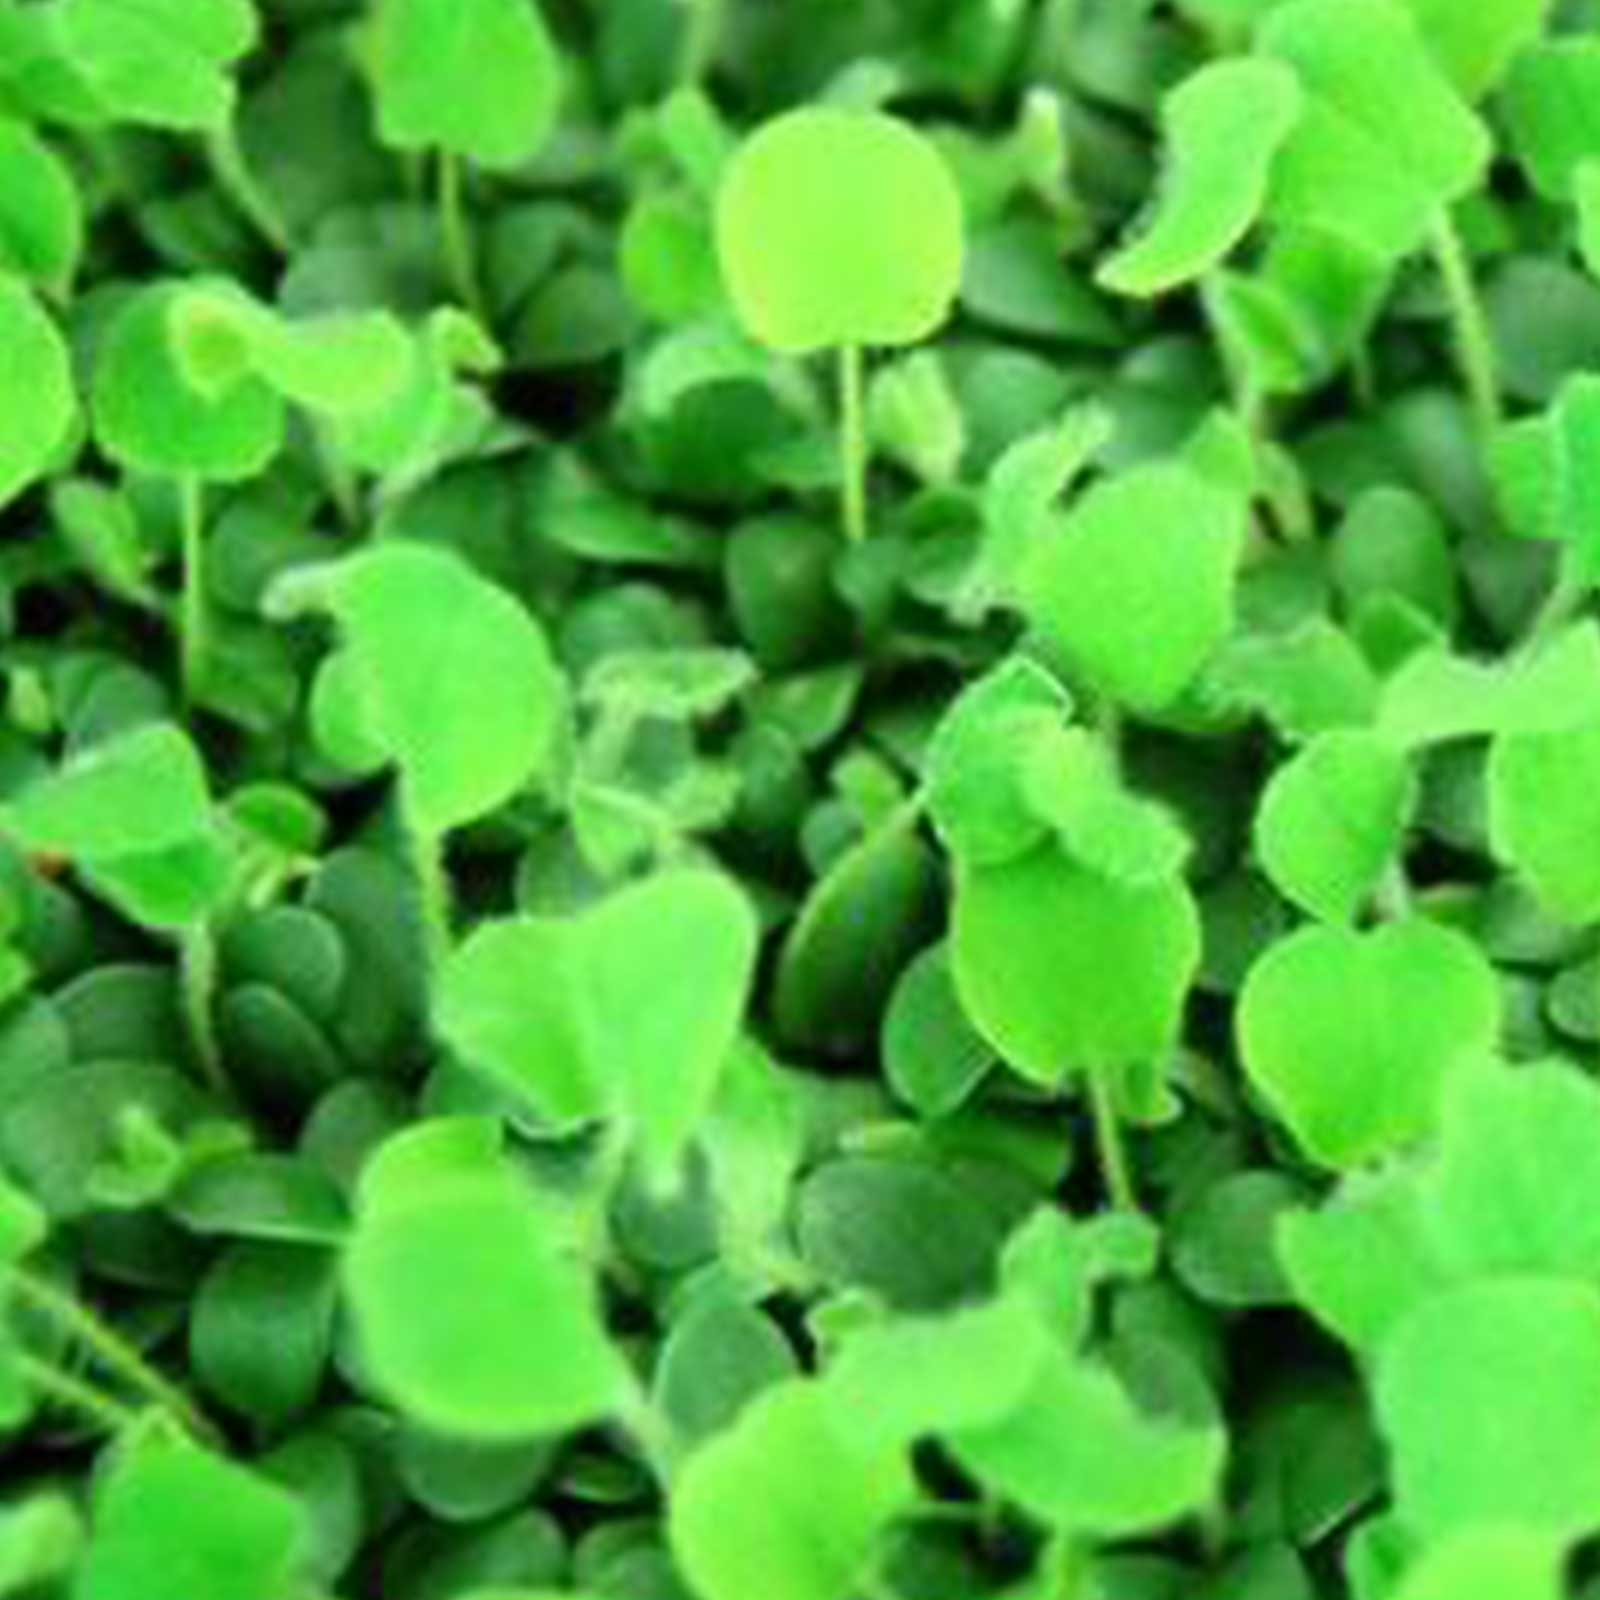 Red Clover Seeds: 4 Oz Non-GMO Sprouting Seeds for Growing Microgreens by Mountain Valley Seed Company